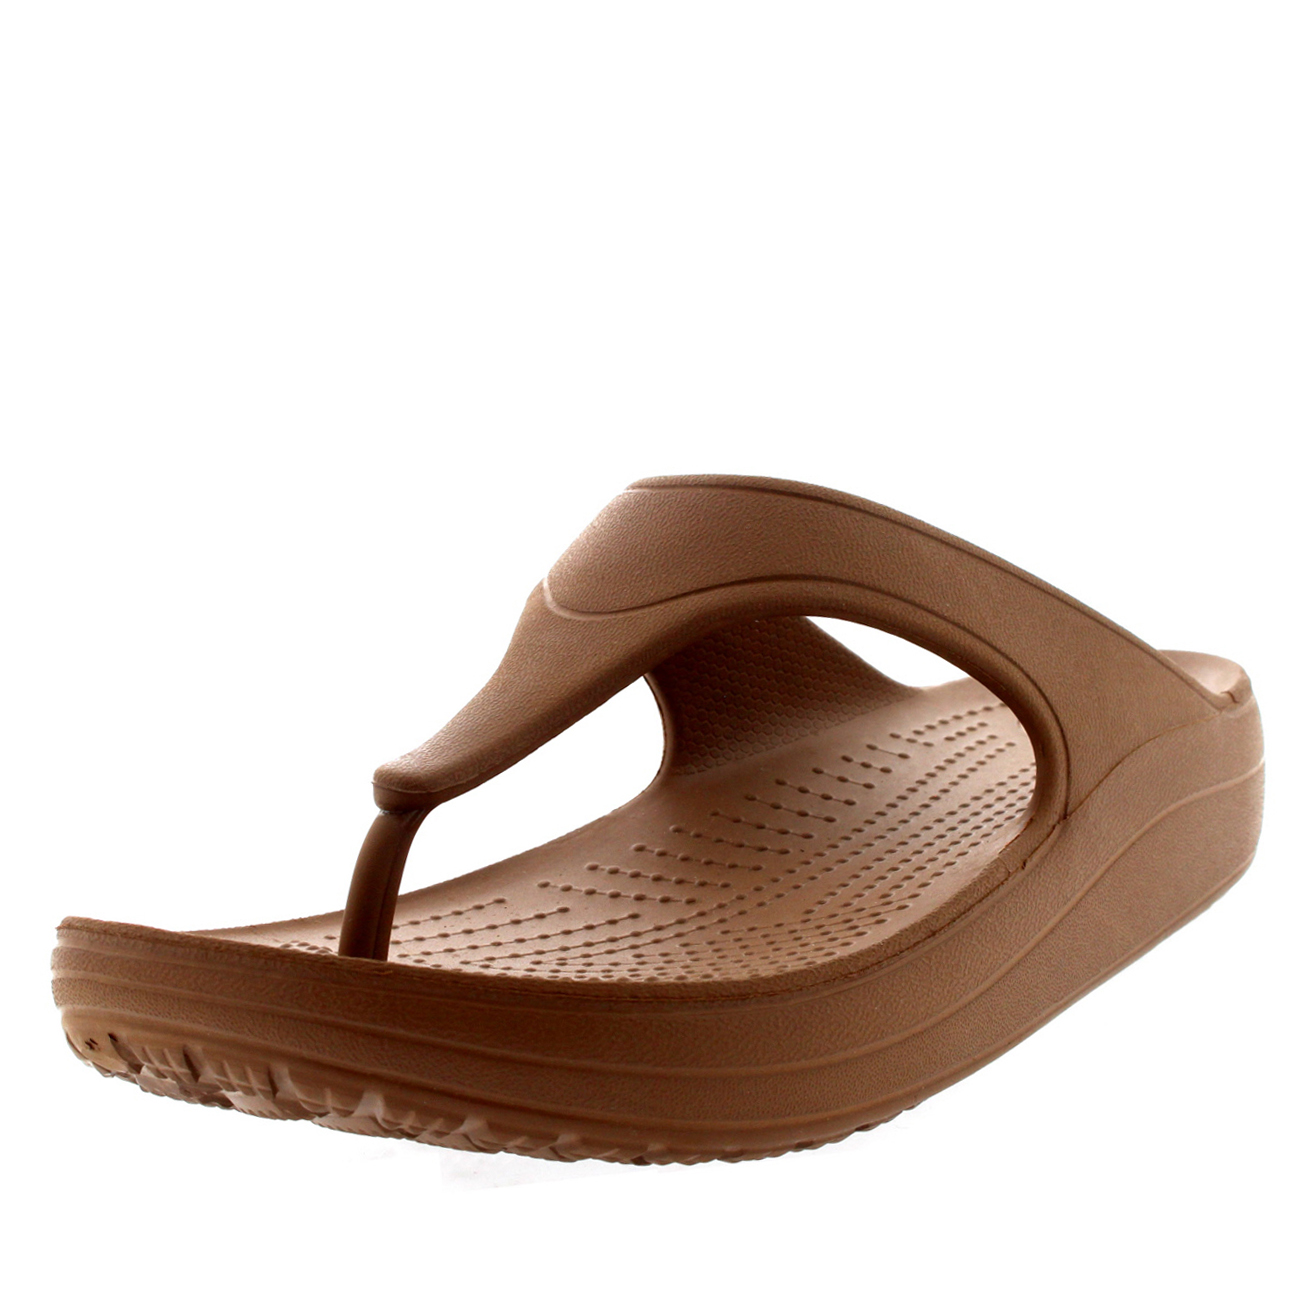 New Crocs Sandals Shoes I Love Them They Are Stylish And Comfortable And Go Every Where! Easy To Slip OnI Want Them In More Colors These Clarks Womens Breeze Sea Flip Flop Sandals For Summer Are A Sporty, Lightweight Sandal That